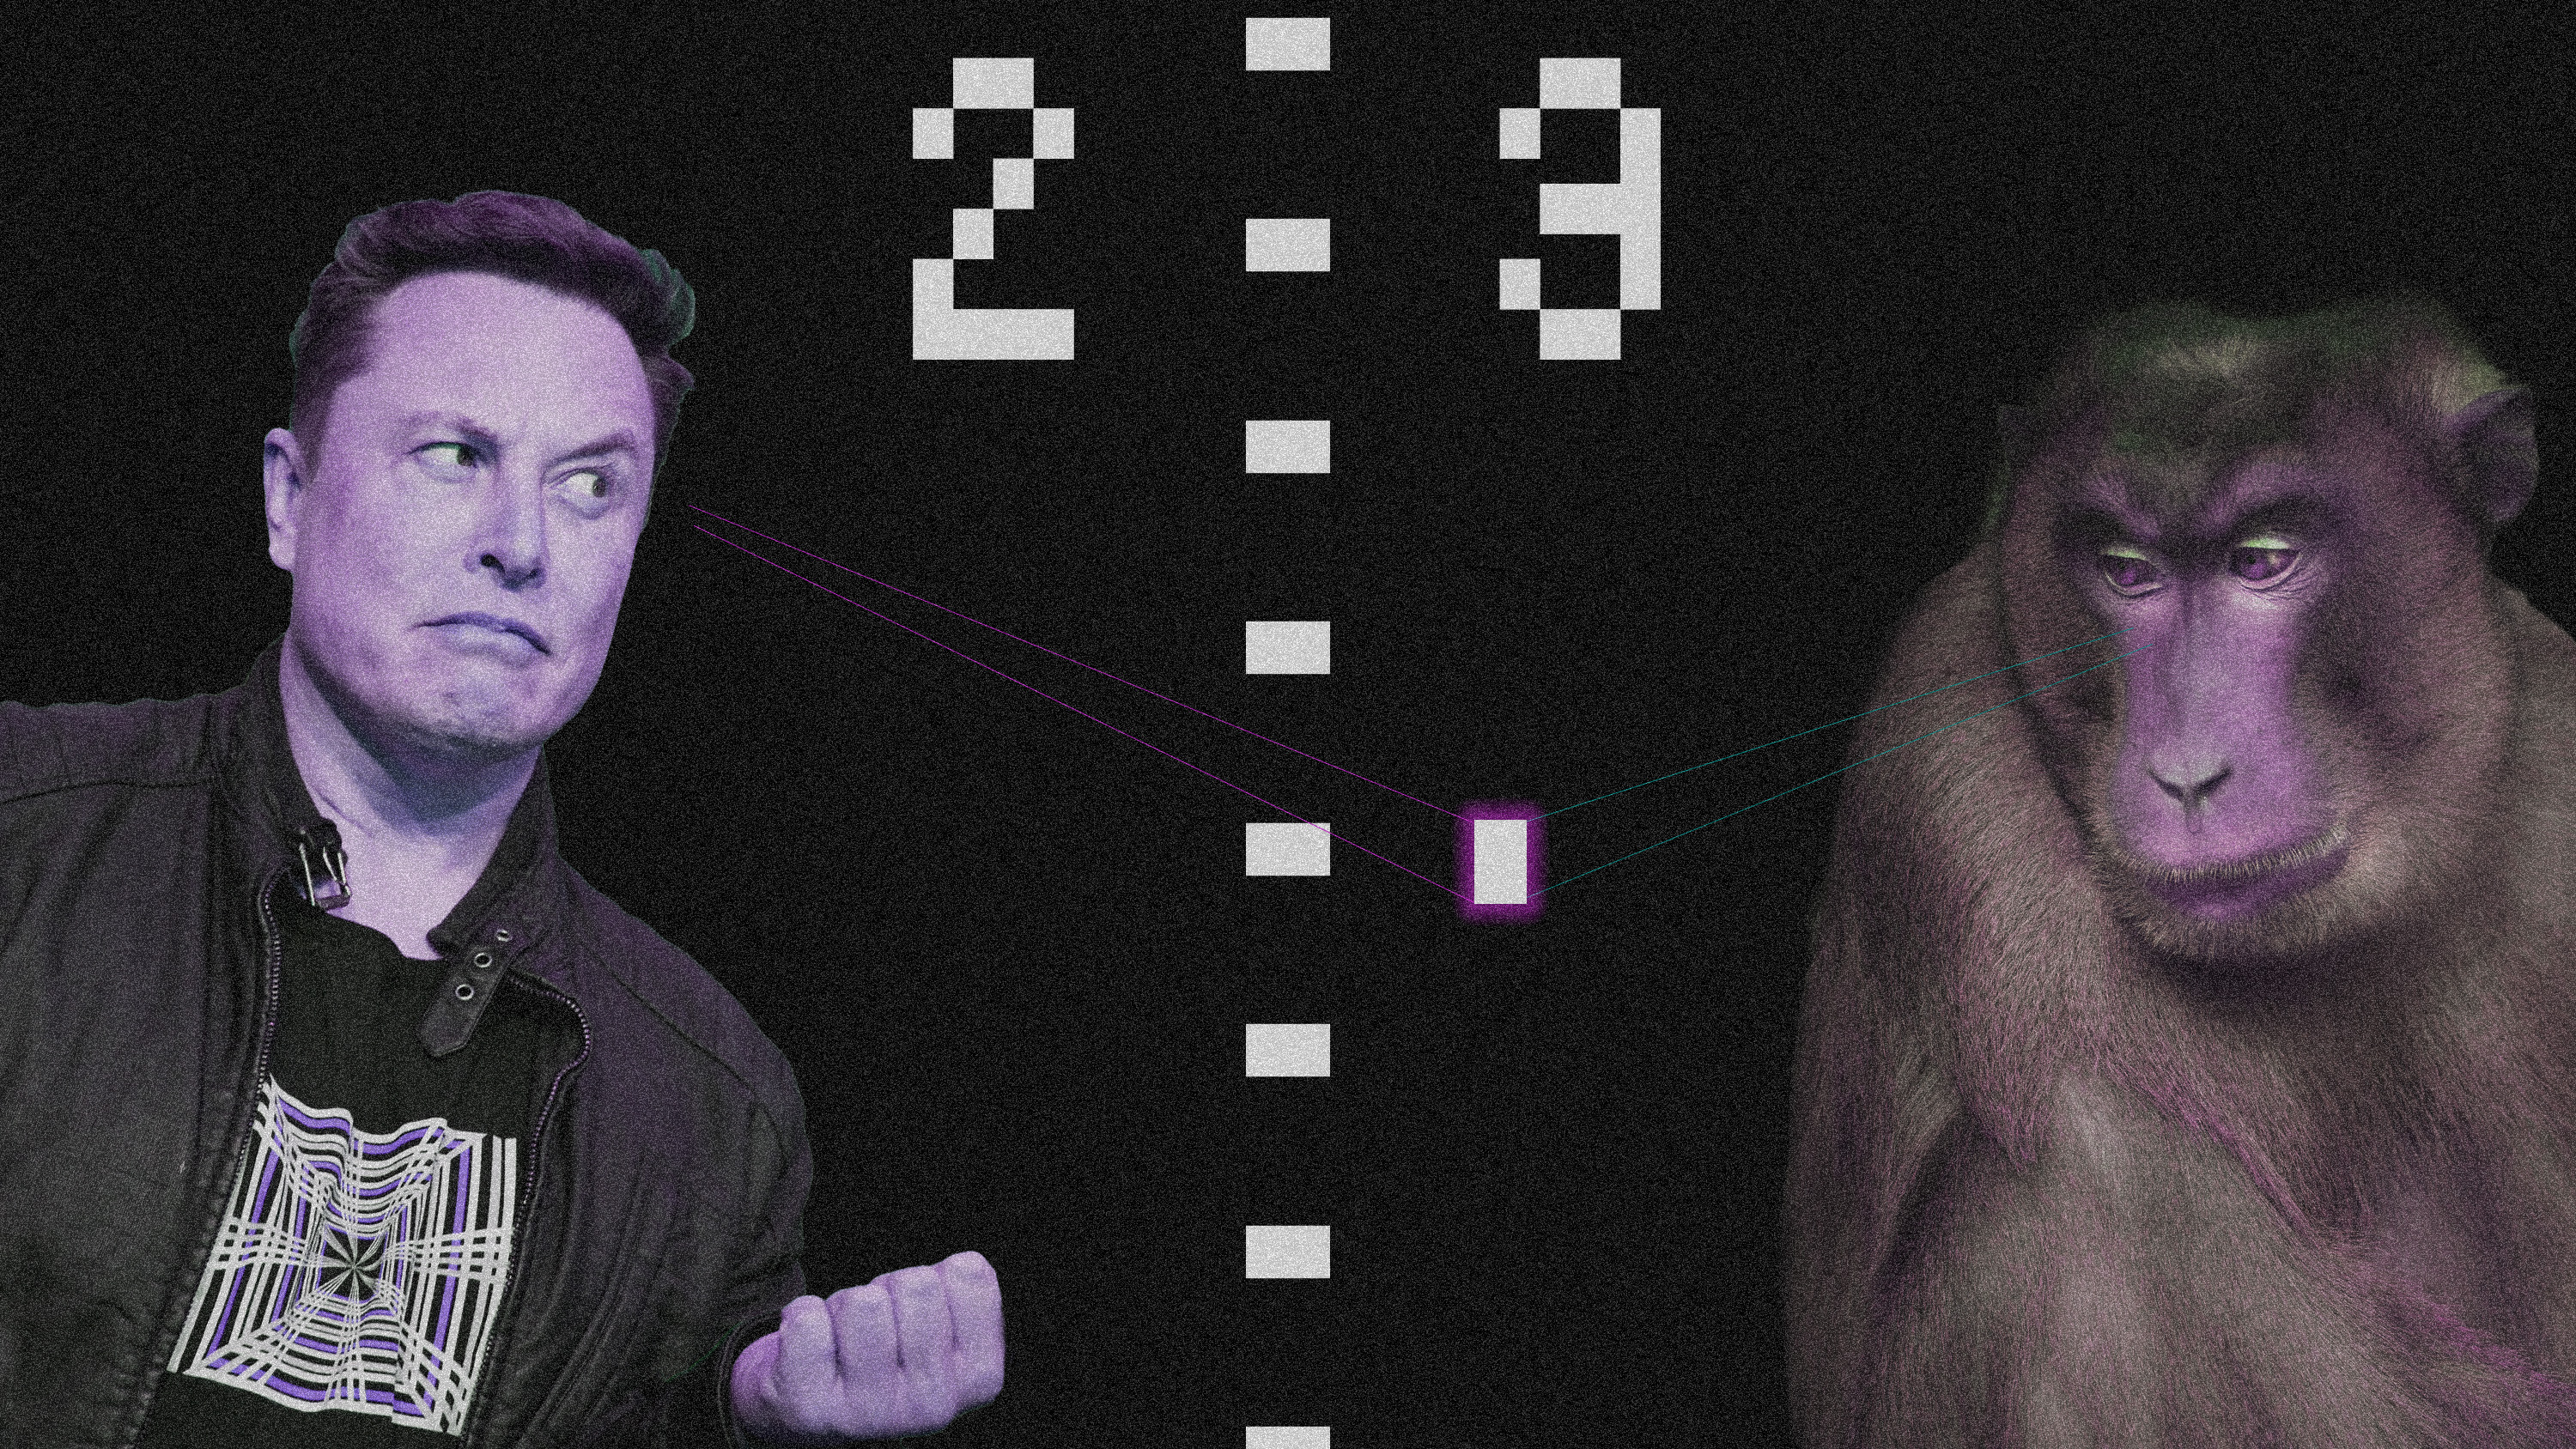 Elon plays pong vs monkey